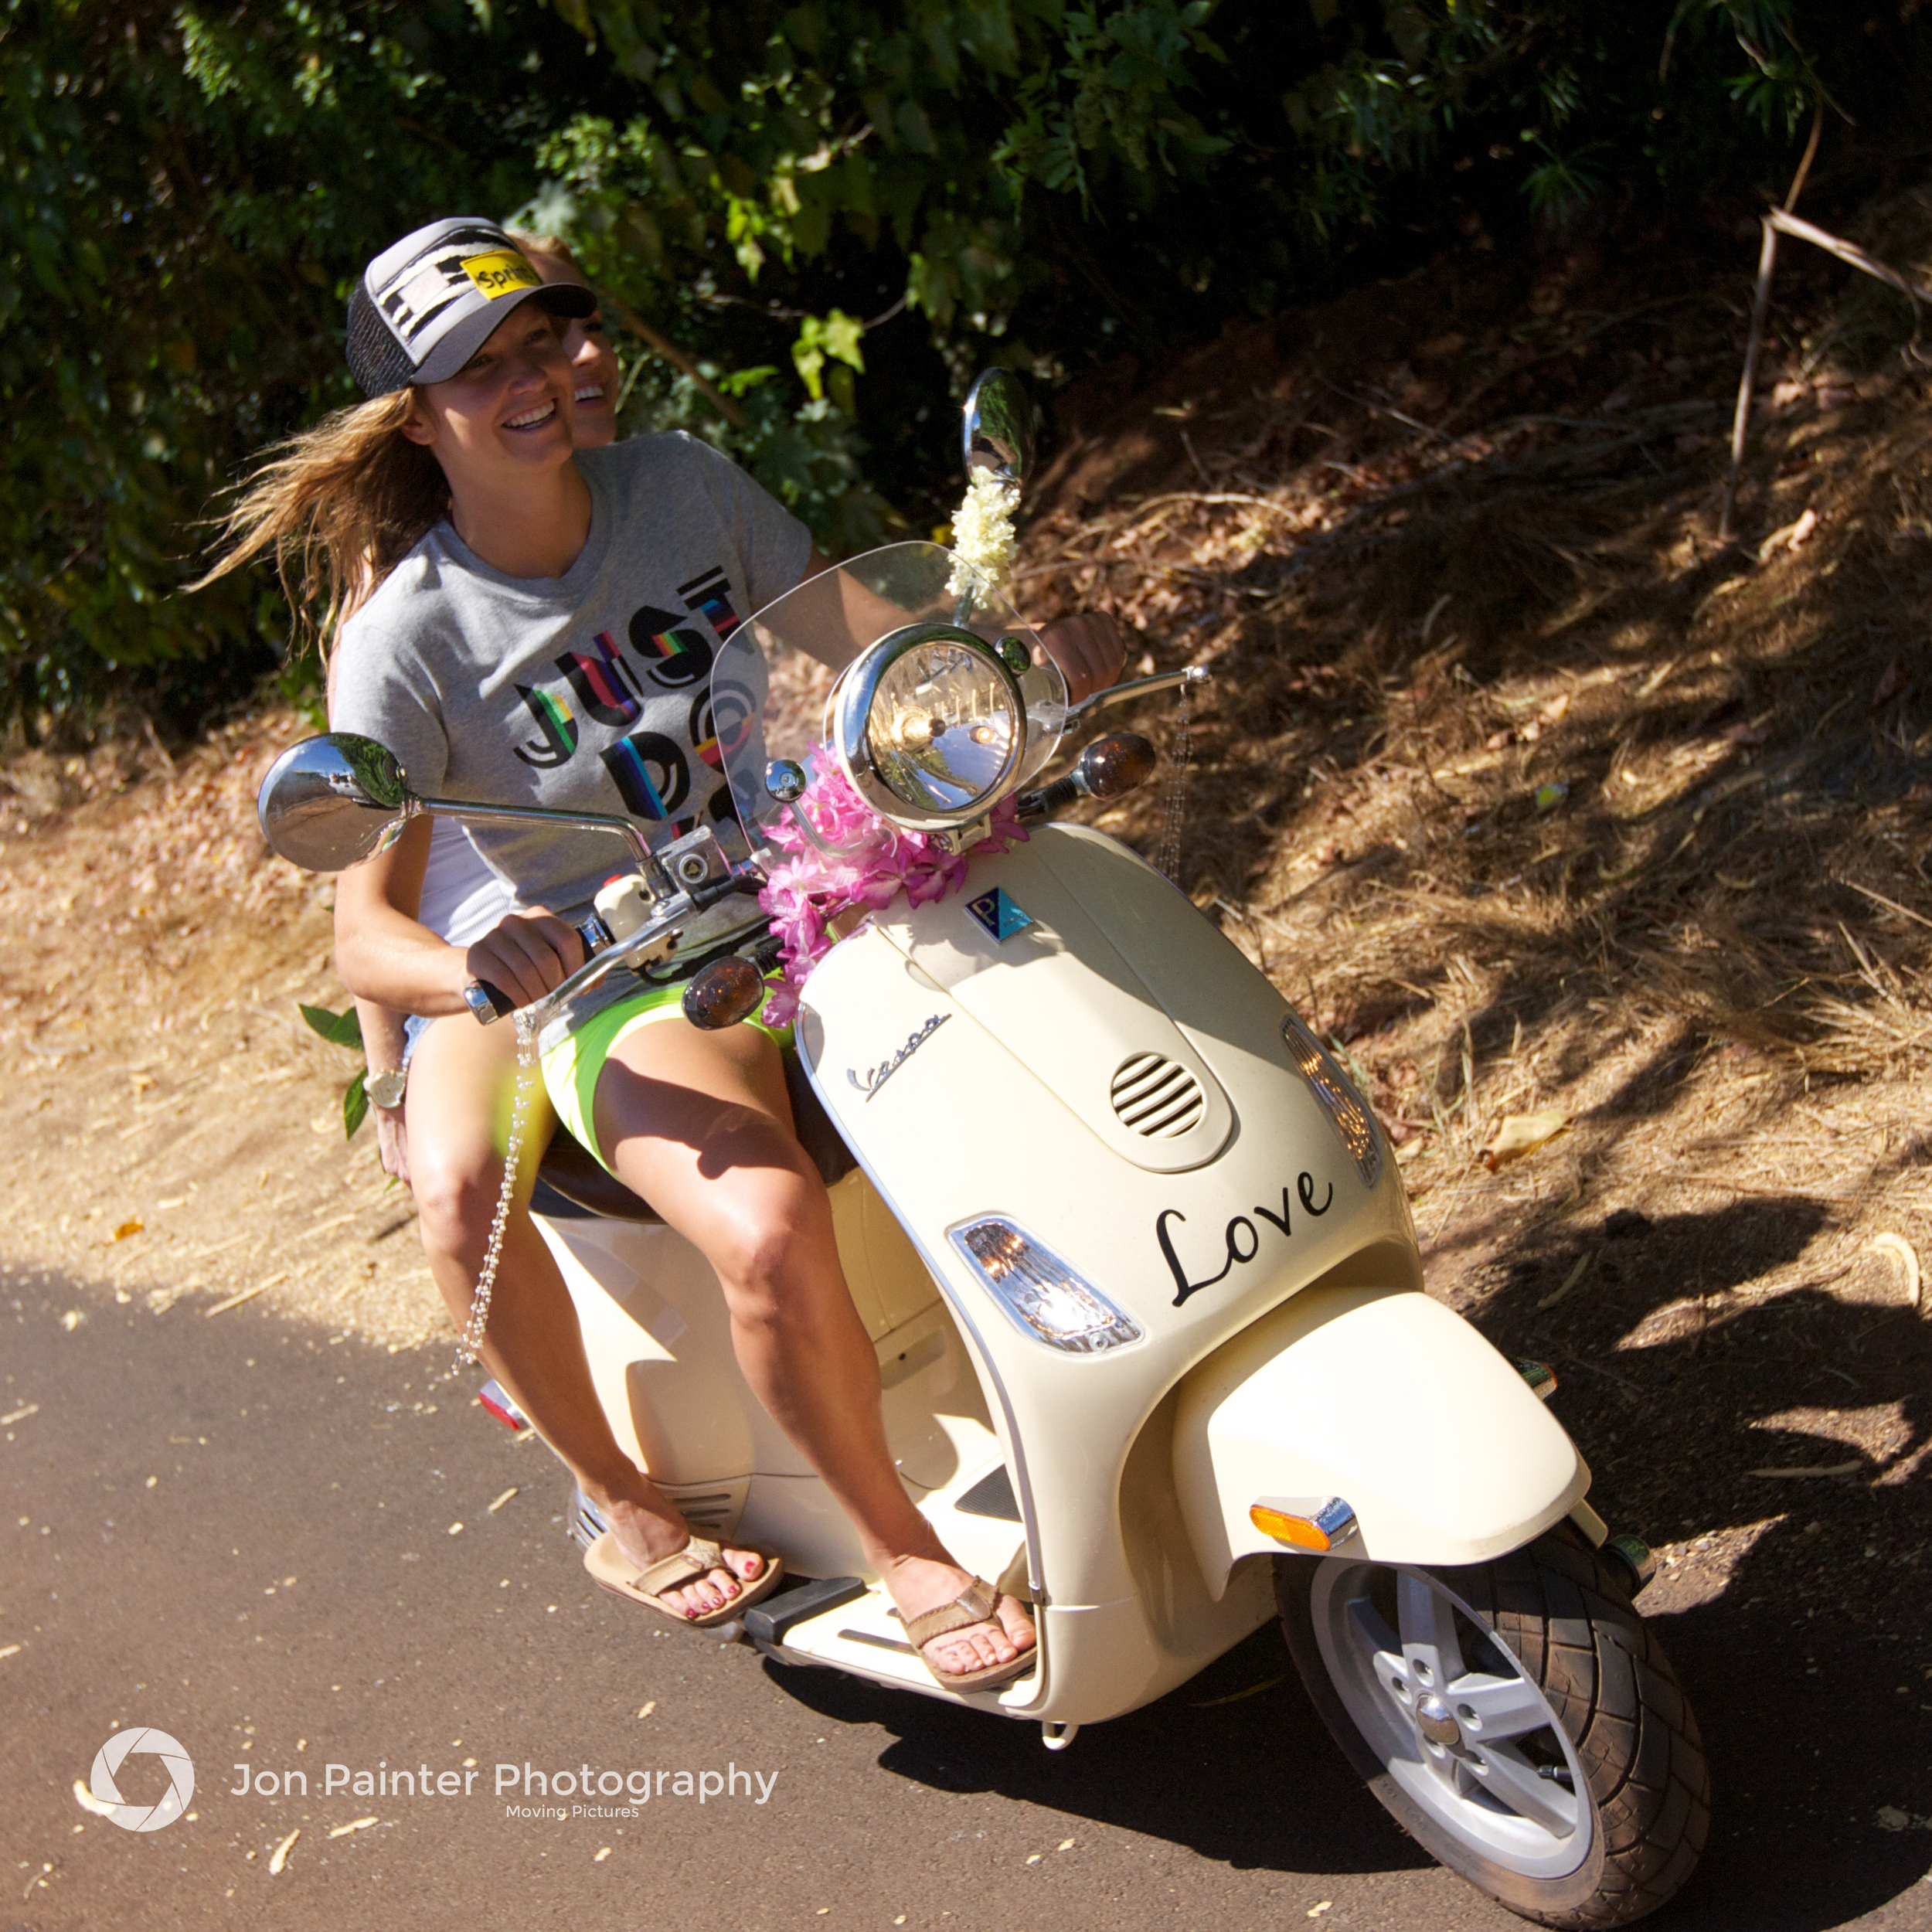 Julia Mancuso and Lauren Thompson riding Julia's Vespa. - Maui, Hawaii.